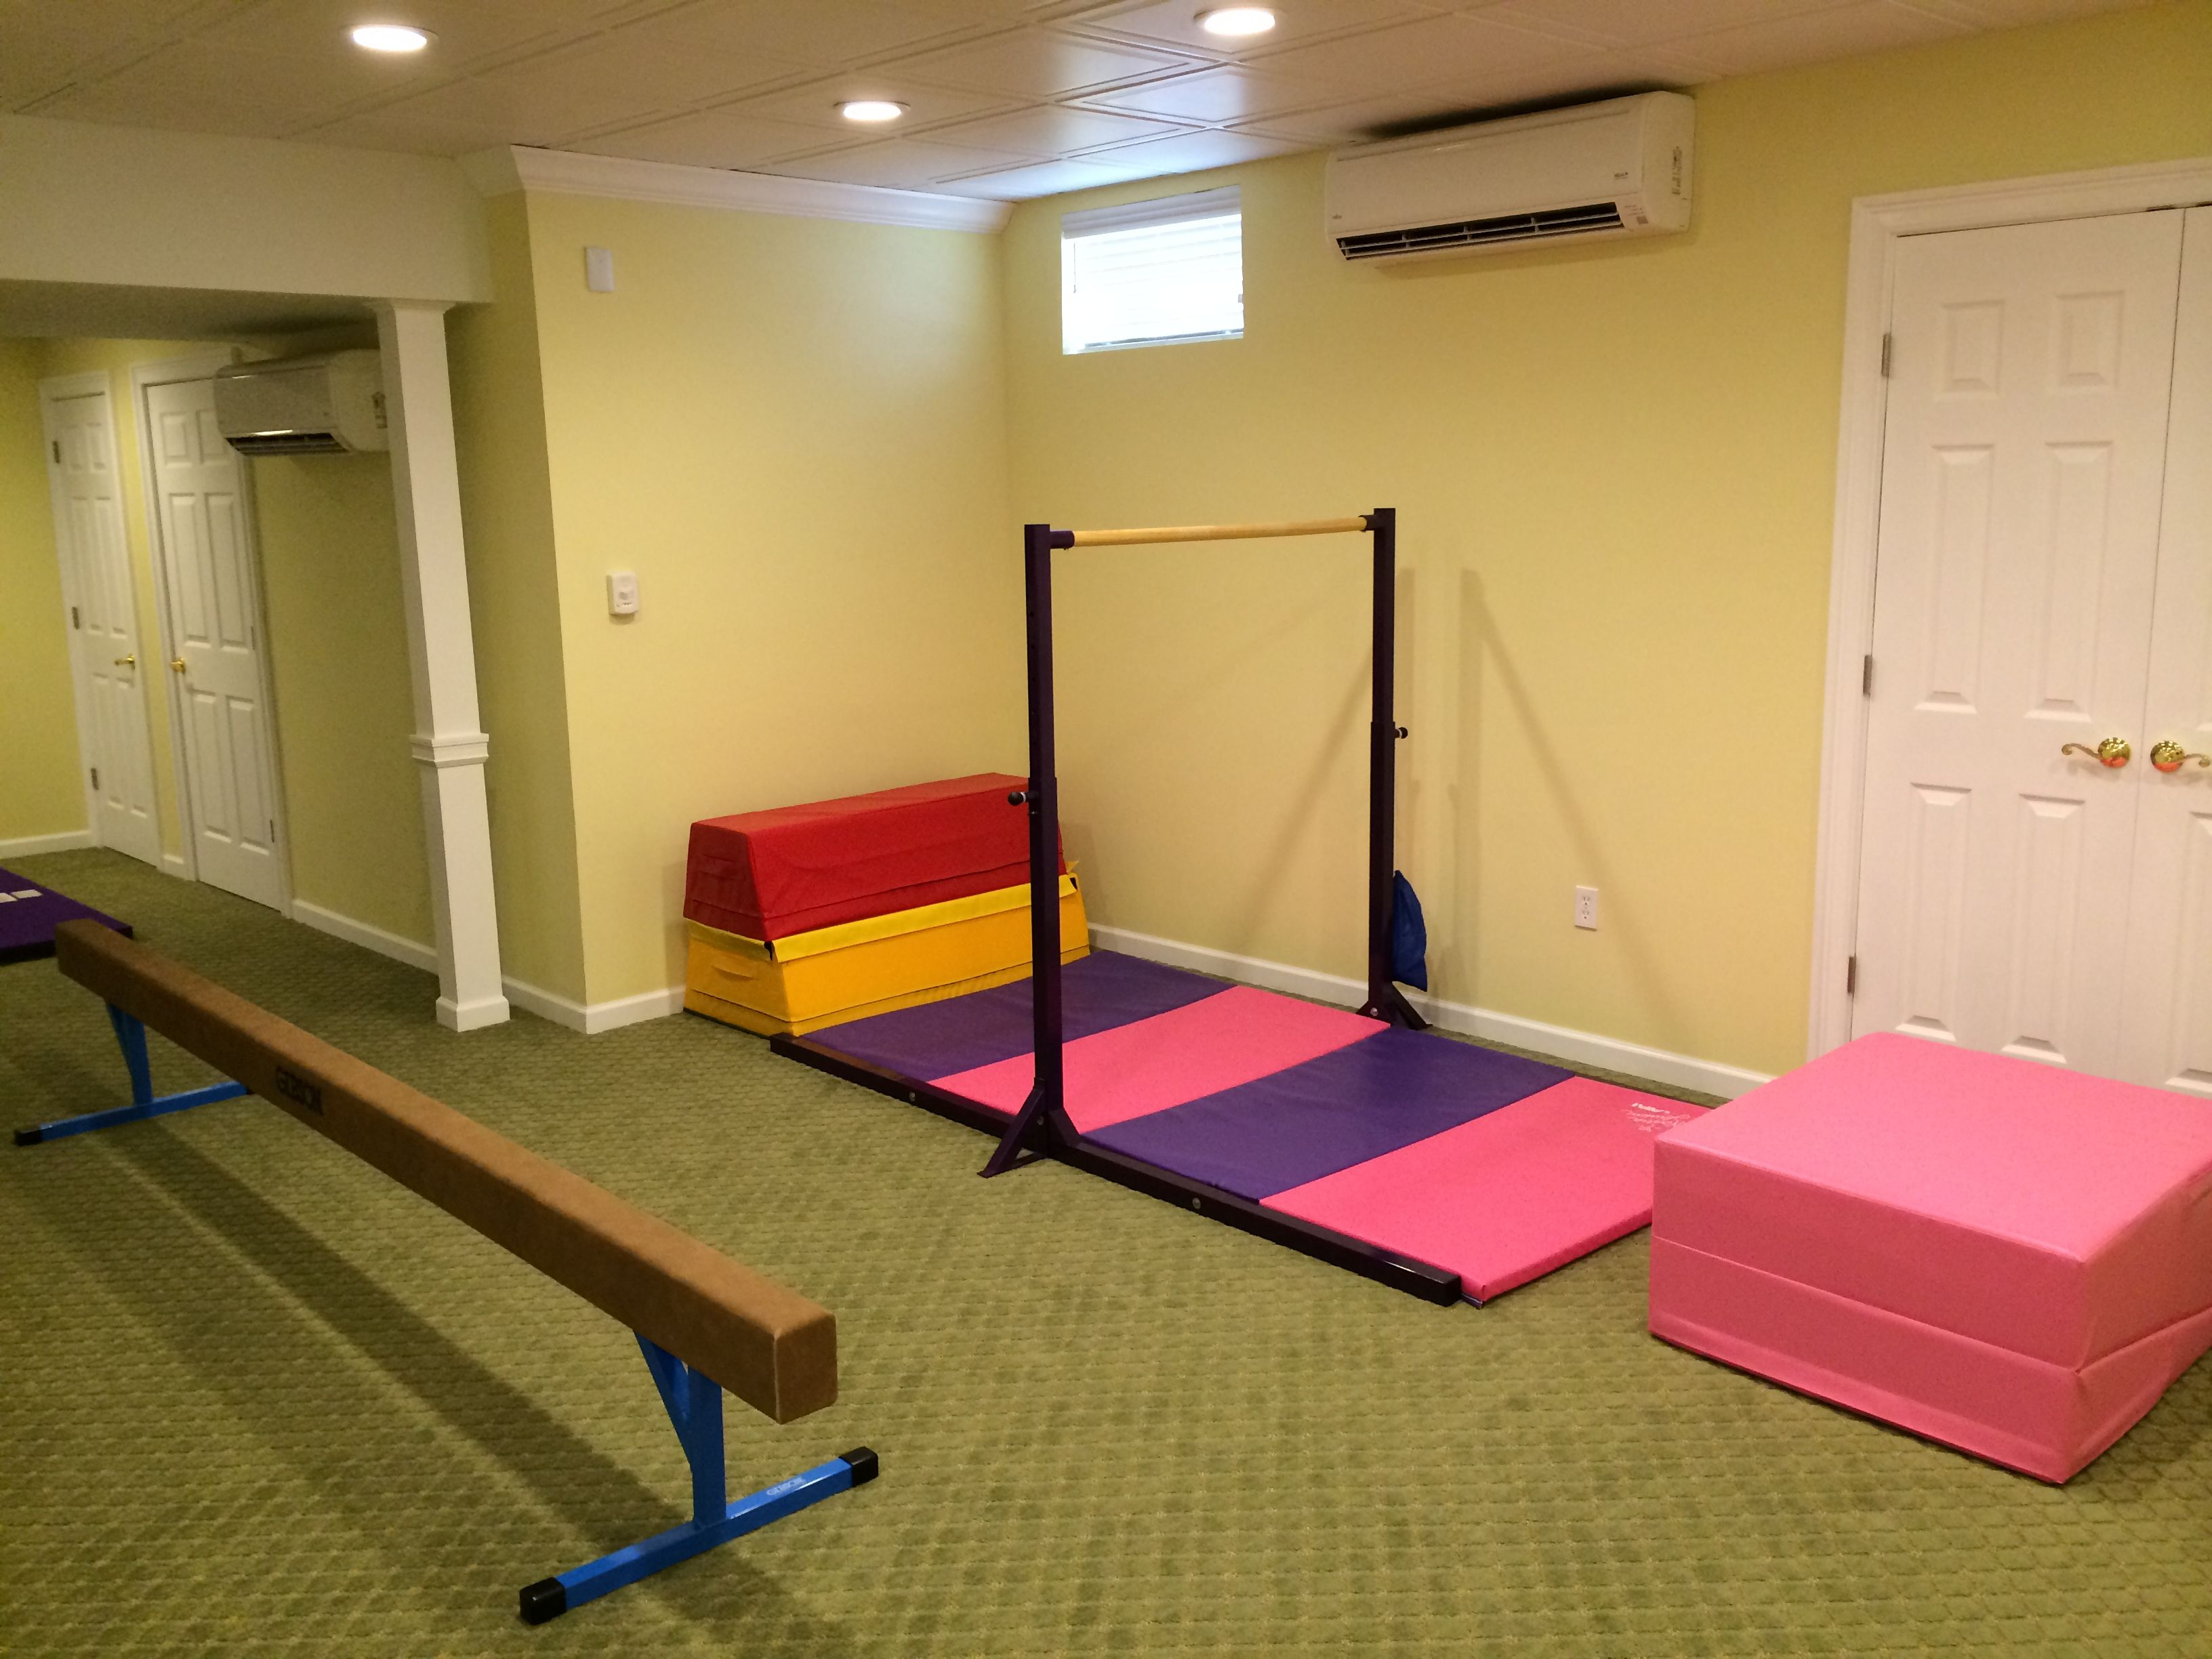 Basement Remodel with a kids gymnastics area. | Gymnastics ...